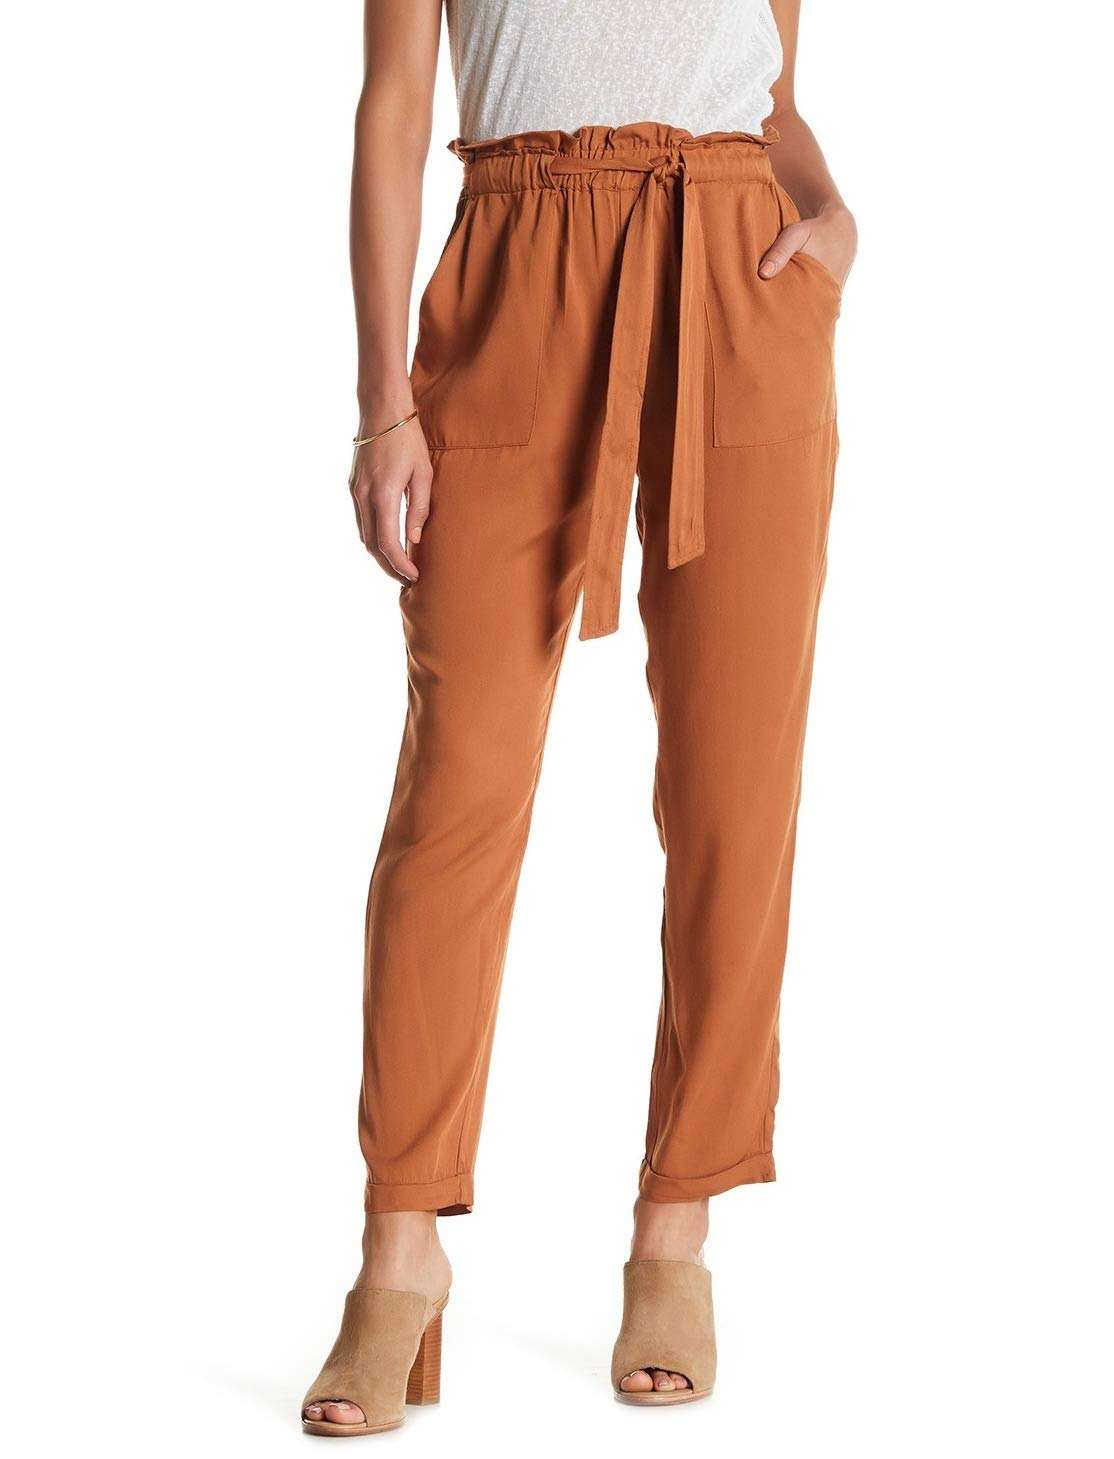 Know One Cares Rust Womens Small Pull-On Paper Bag Pants Brown S